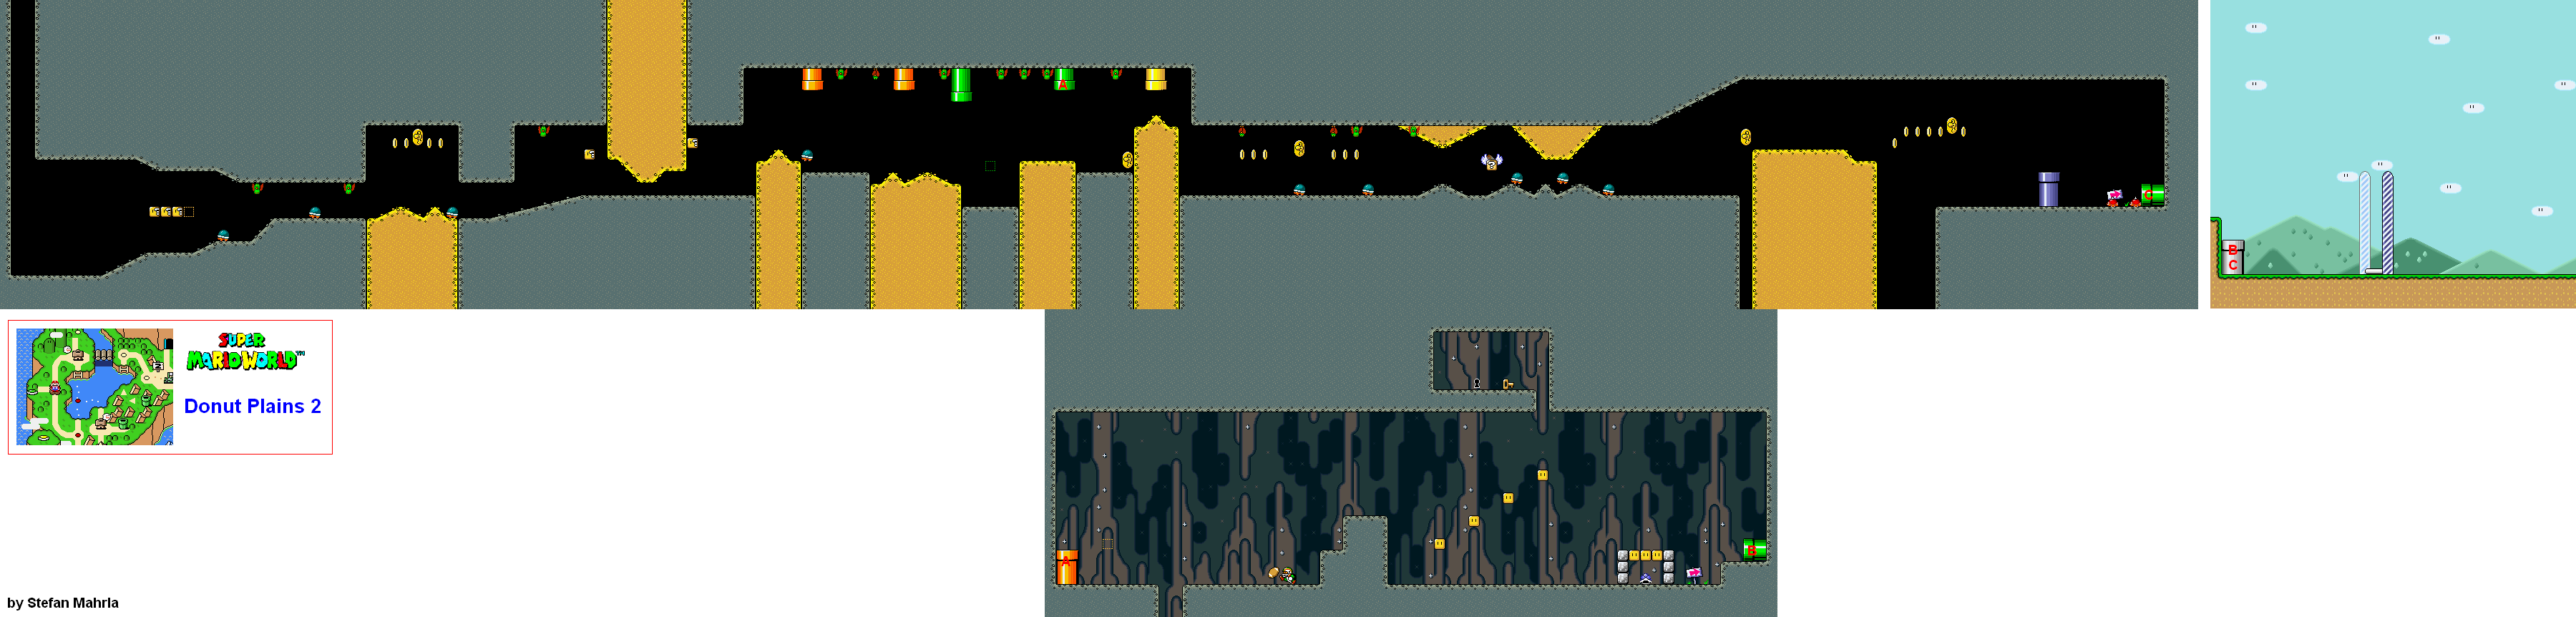 Super Mario World Levels Game Maps